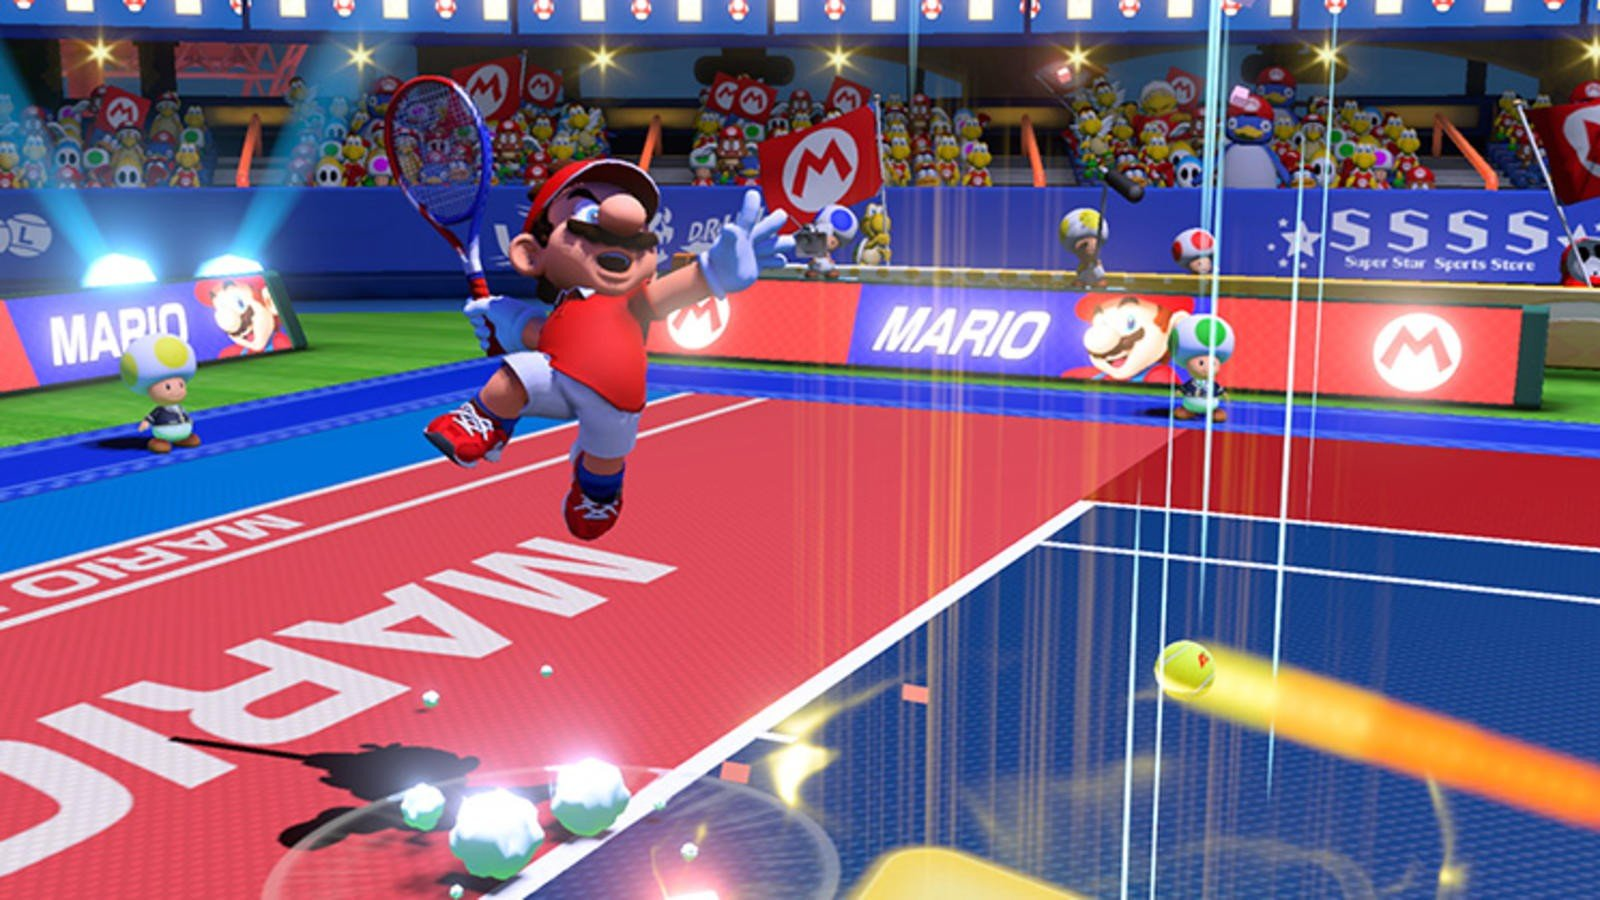 Mario Tennis Aces is the Best Sports games on Nintendo Switch